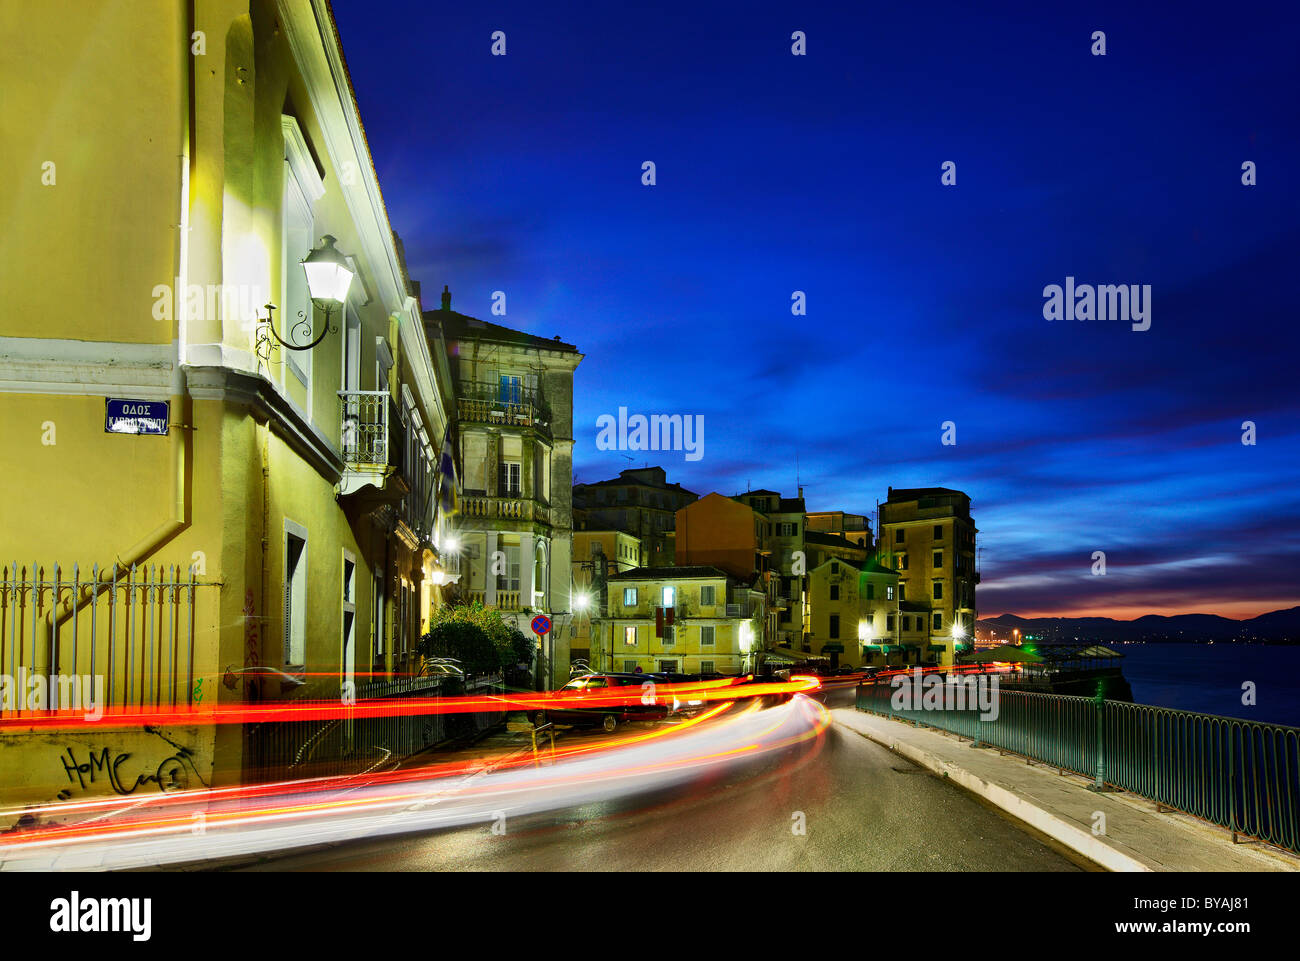 Greece, Corfu (or 'Kerkyra' island). The road that goes from Liston and Spianada, to the old port of Corfu - Stock Image